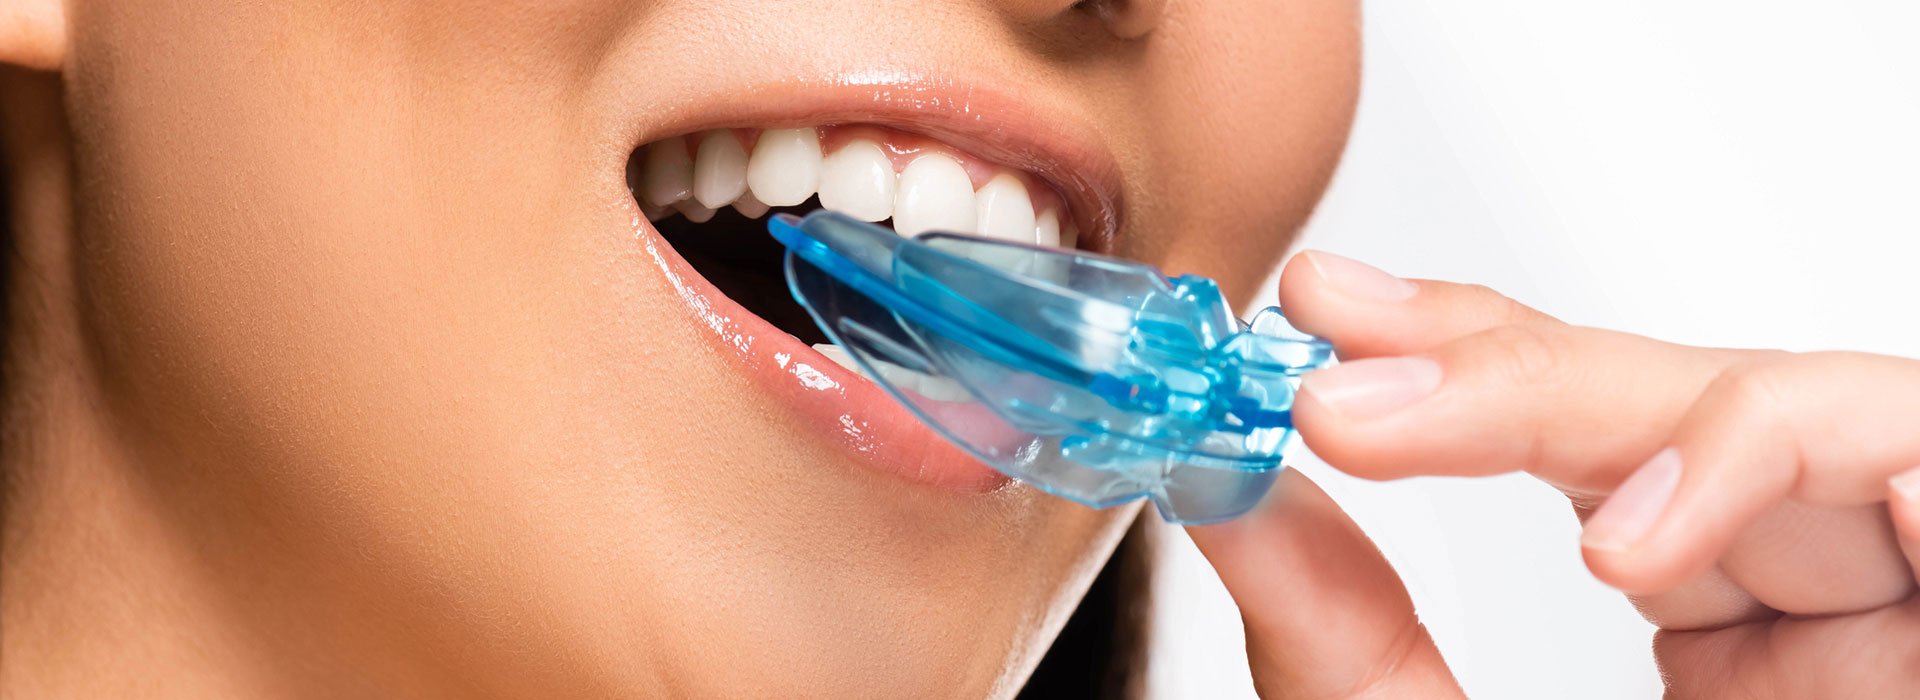 A woman is using her athletic mouth guard